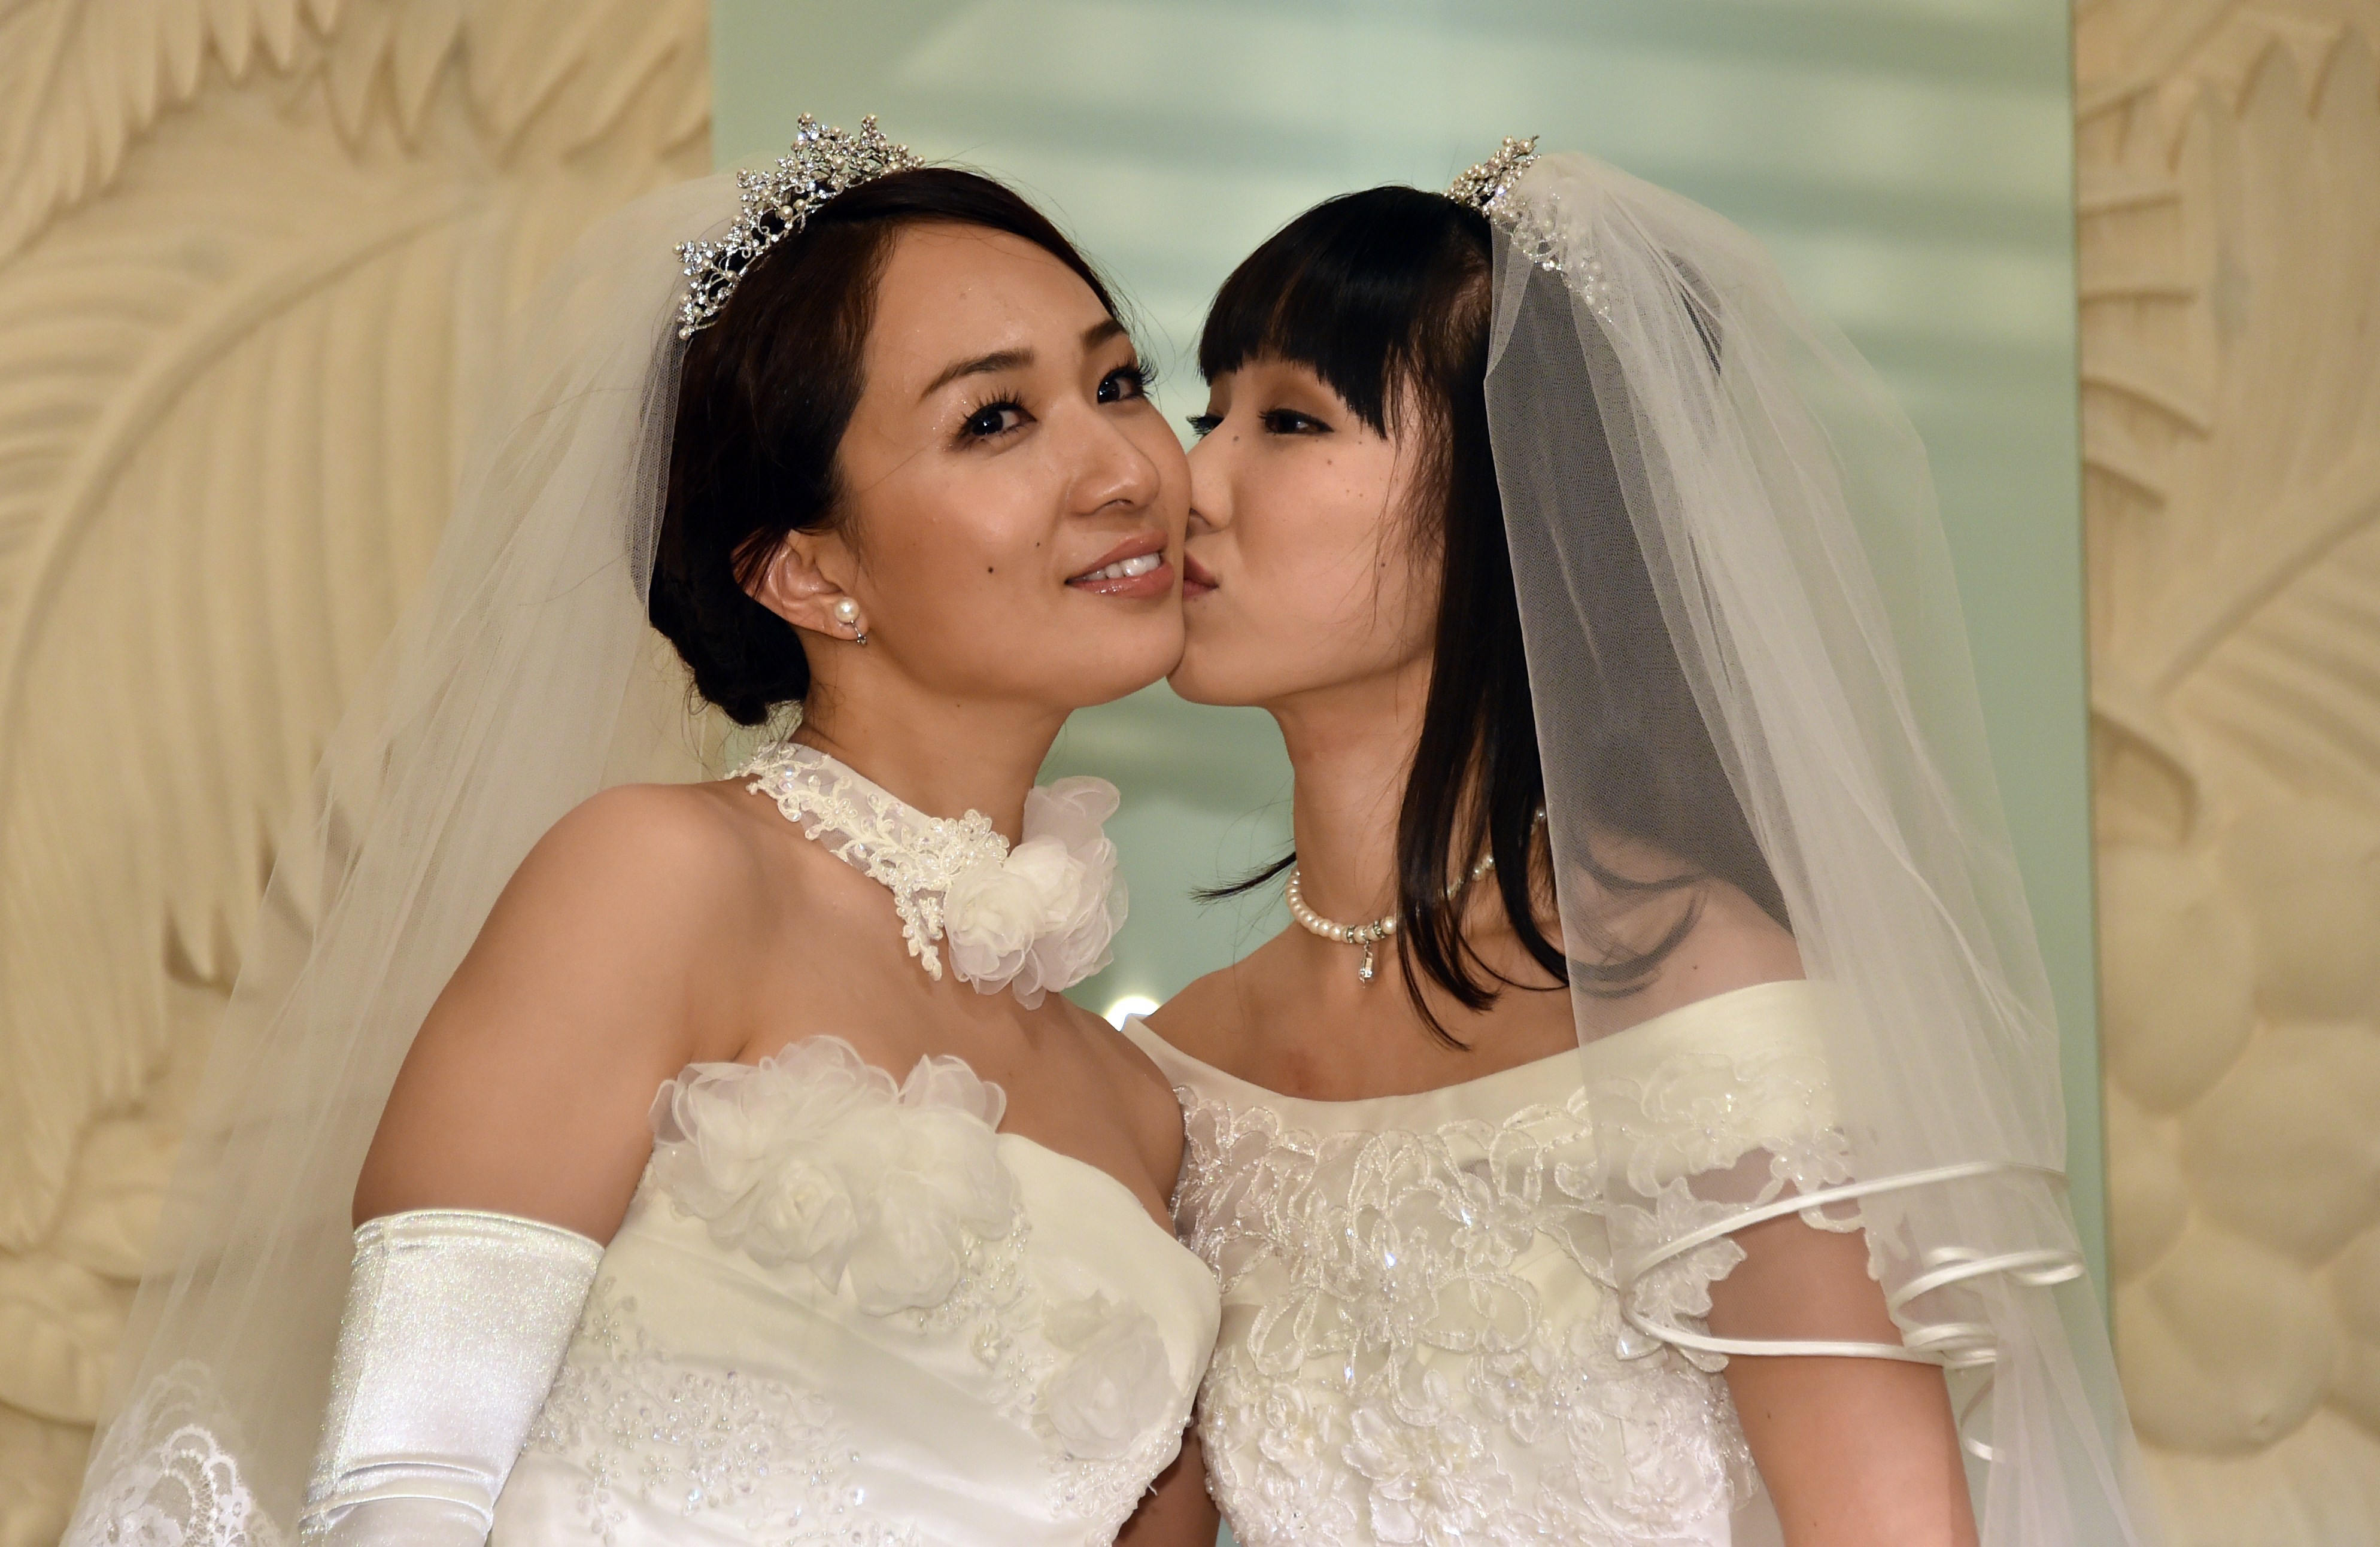 Same-sex couples speak out in Japan's first hearing on gay marriage